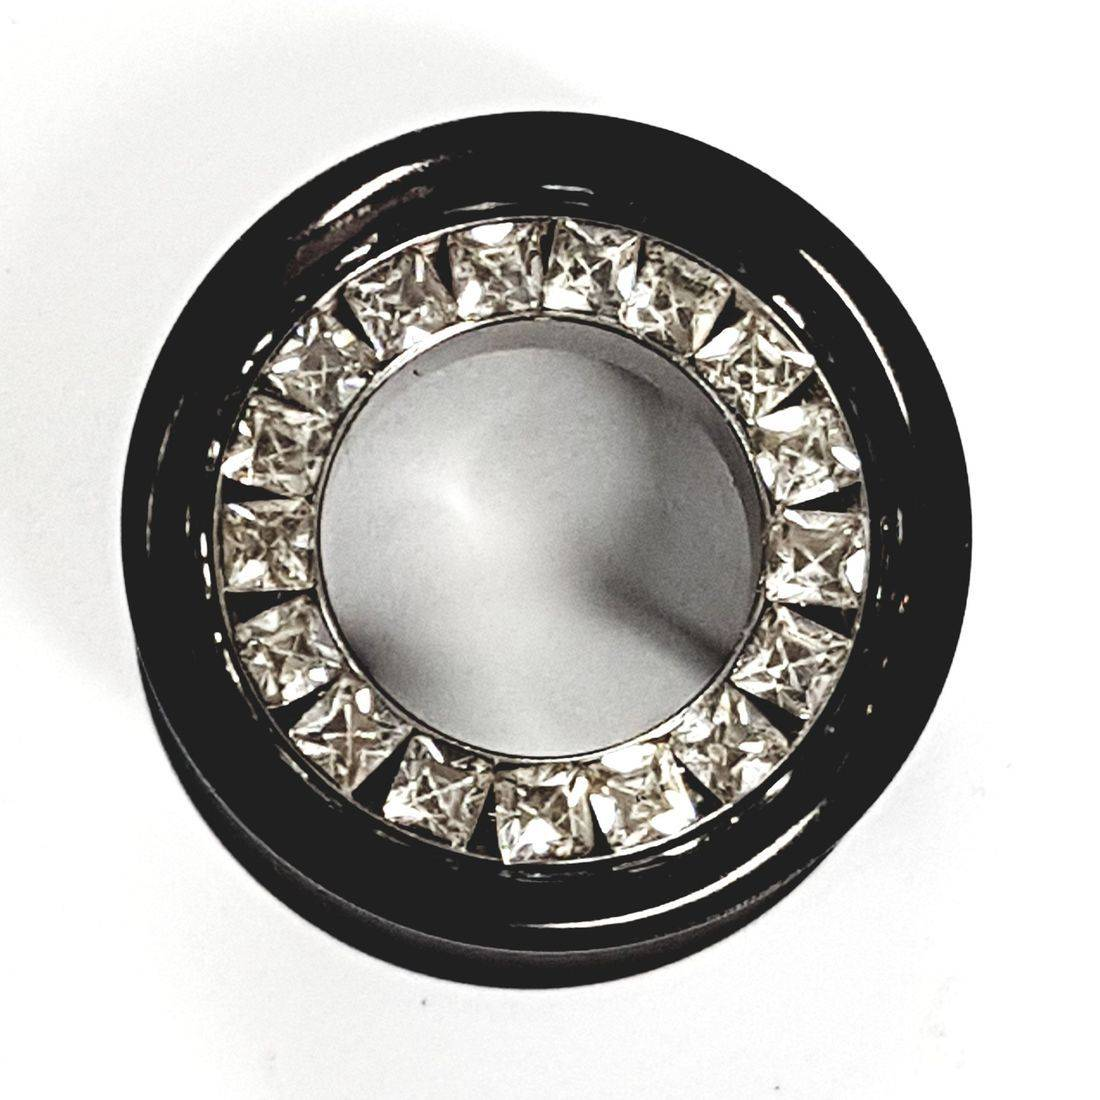 20mm titanium Black tunnel  available from Kazbah online or our Leicester city centre store